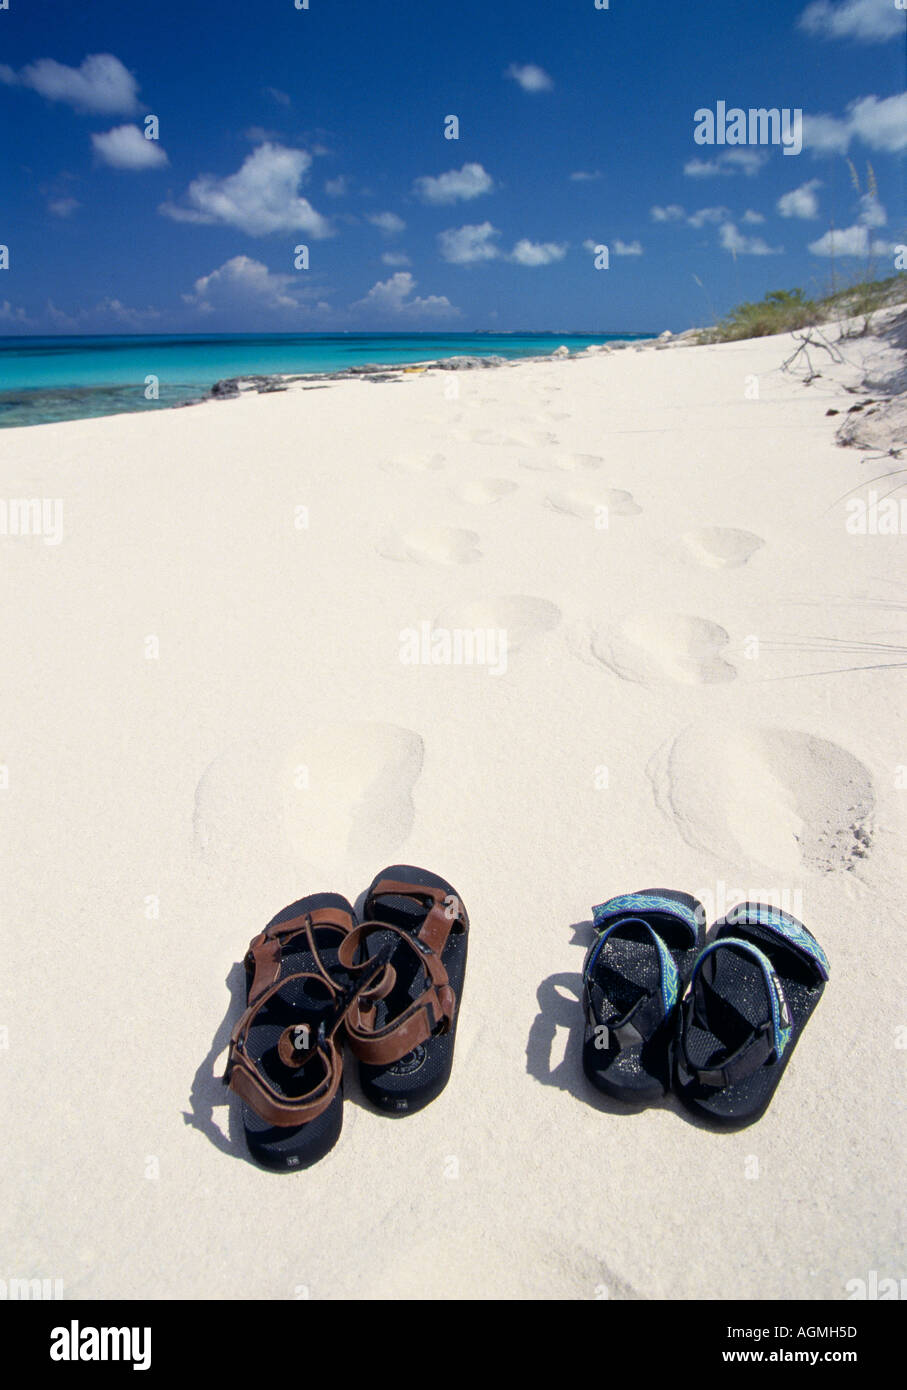 83458a10e San Salvador Club Med Columbus Isle Two pairs of sandals left on the white  sand beach